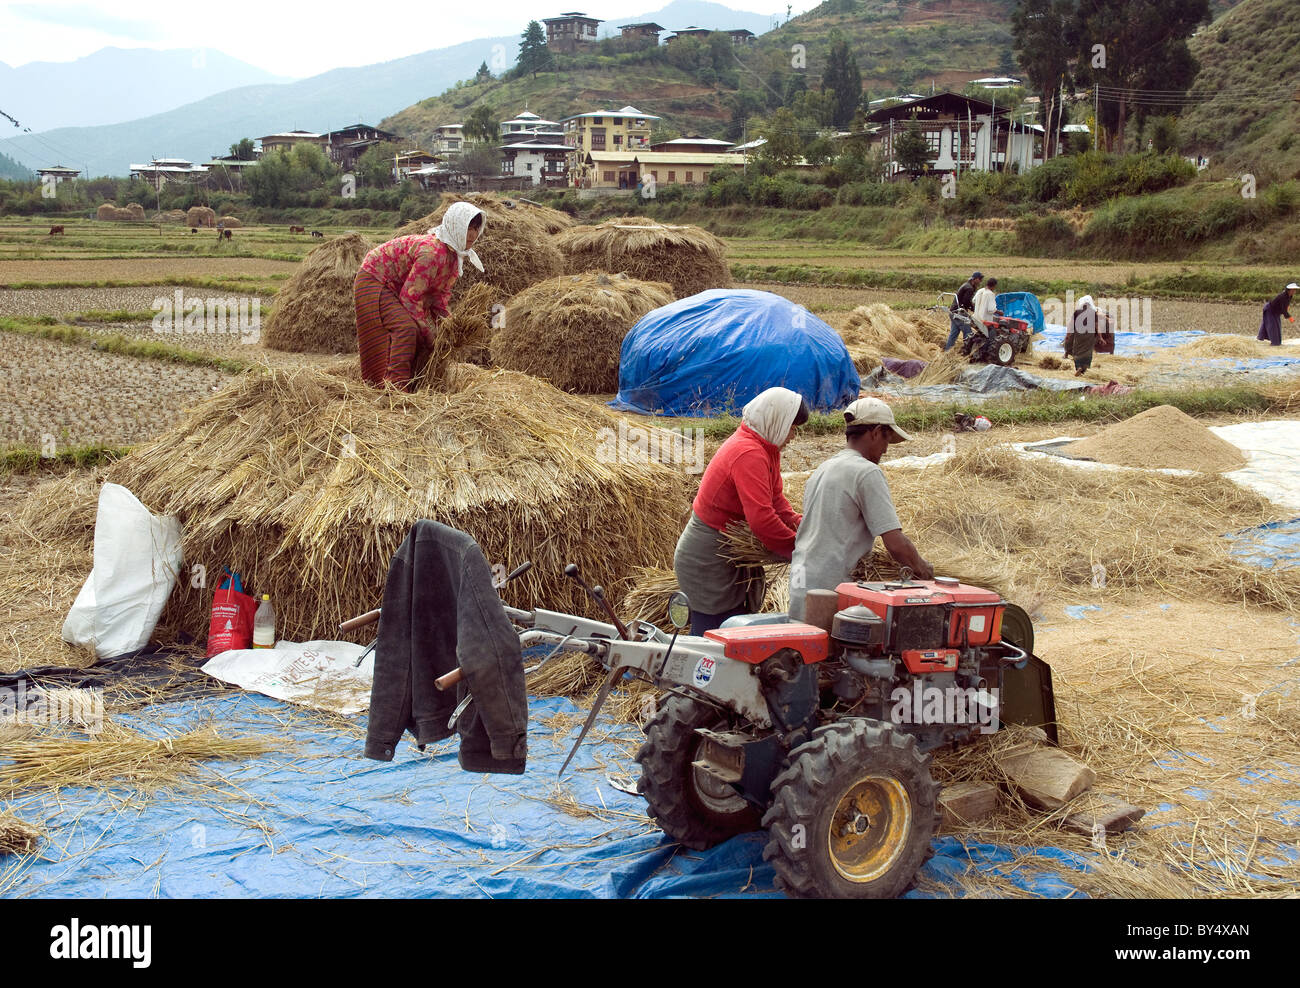 Harvesting rice in Paro valley in Bhutan, one of the mountainous country's few flat places - Stock Image